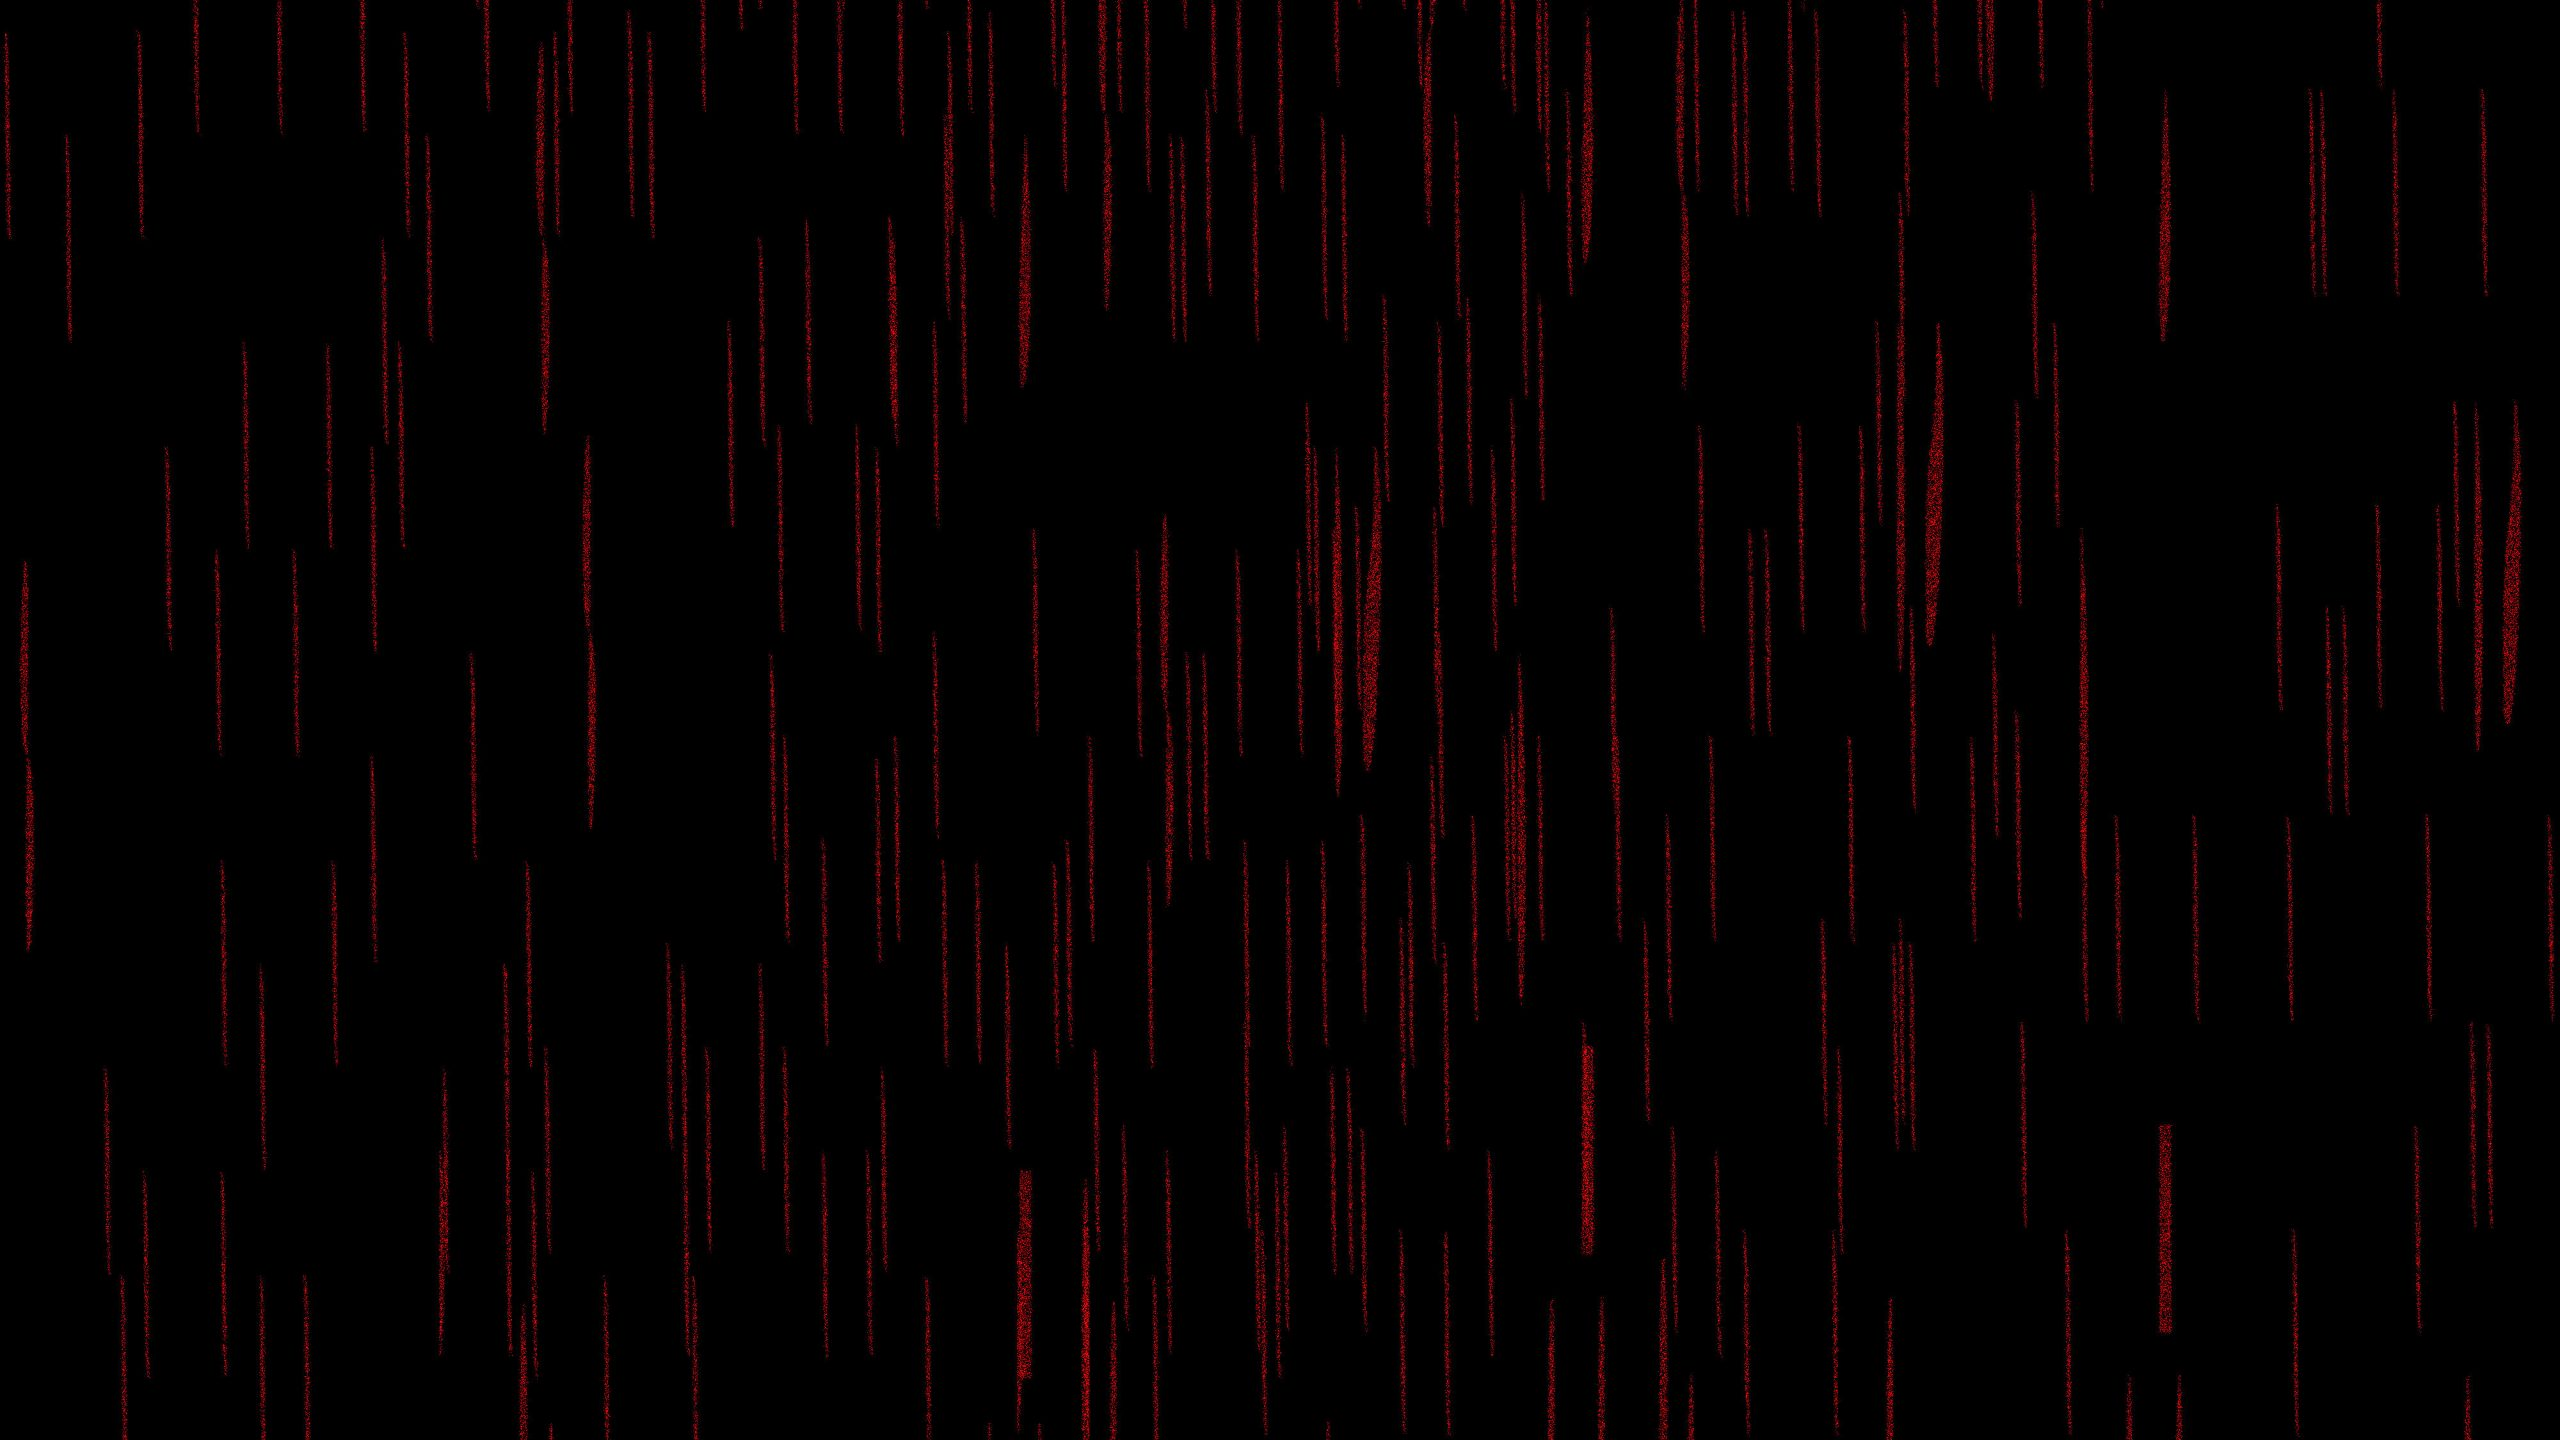 Black and red background illustration